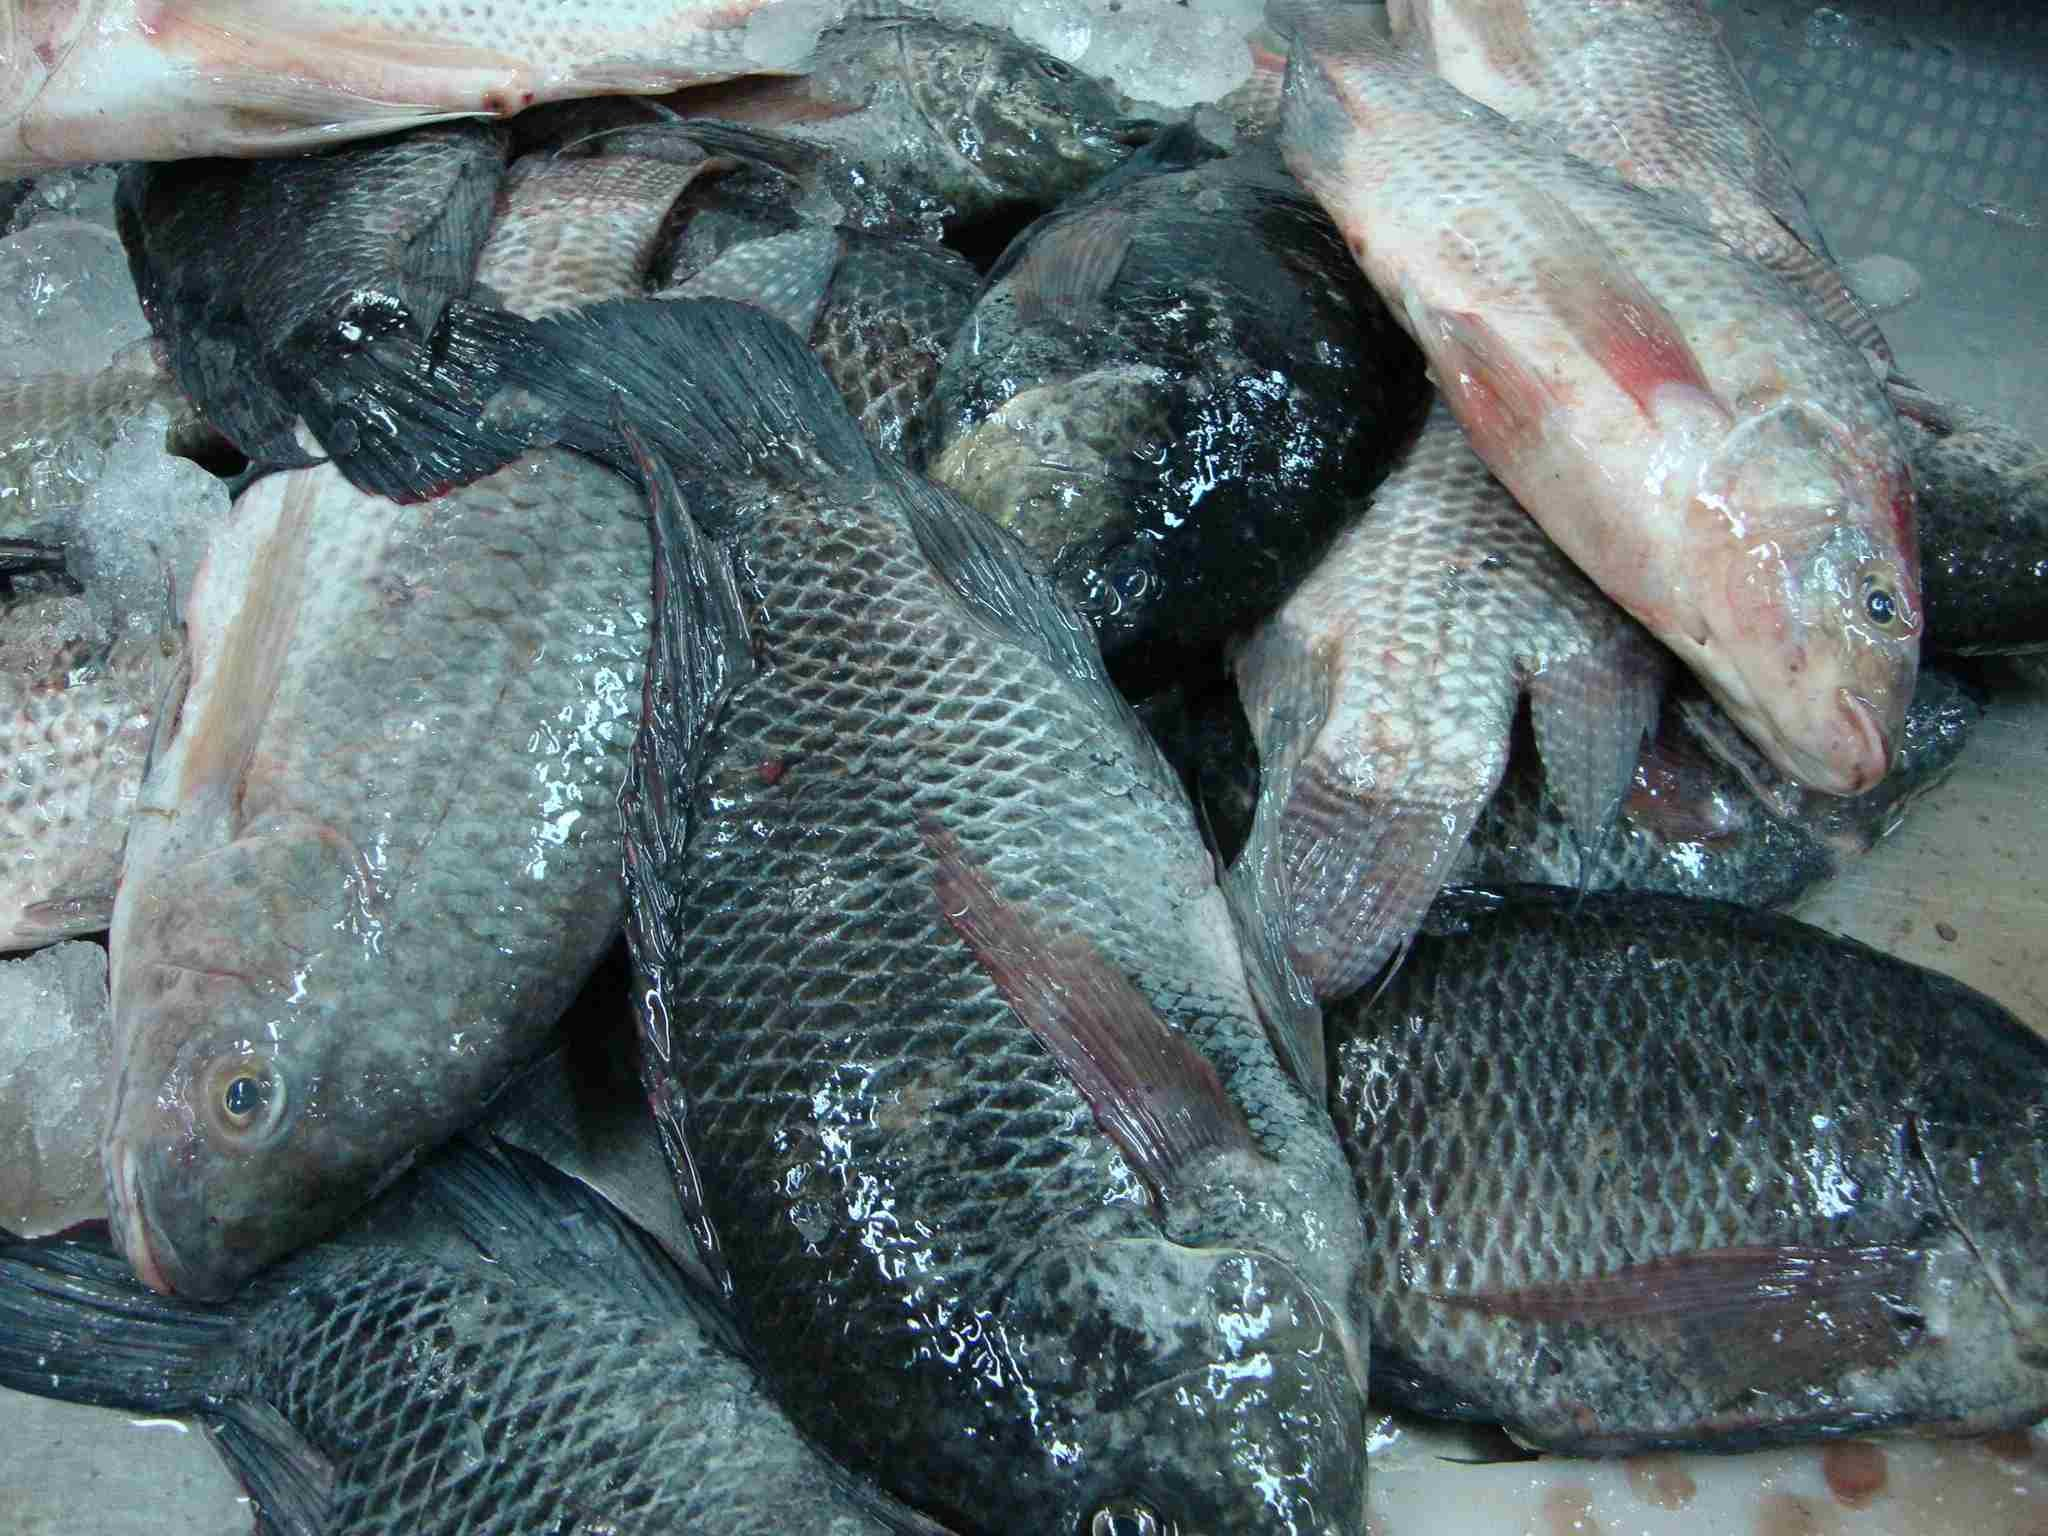 Tilapia aquatic products from vietnam suppliers exporters for Is tilapia a fish